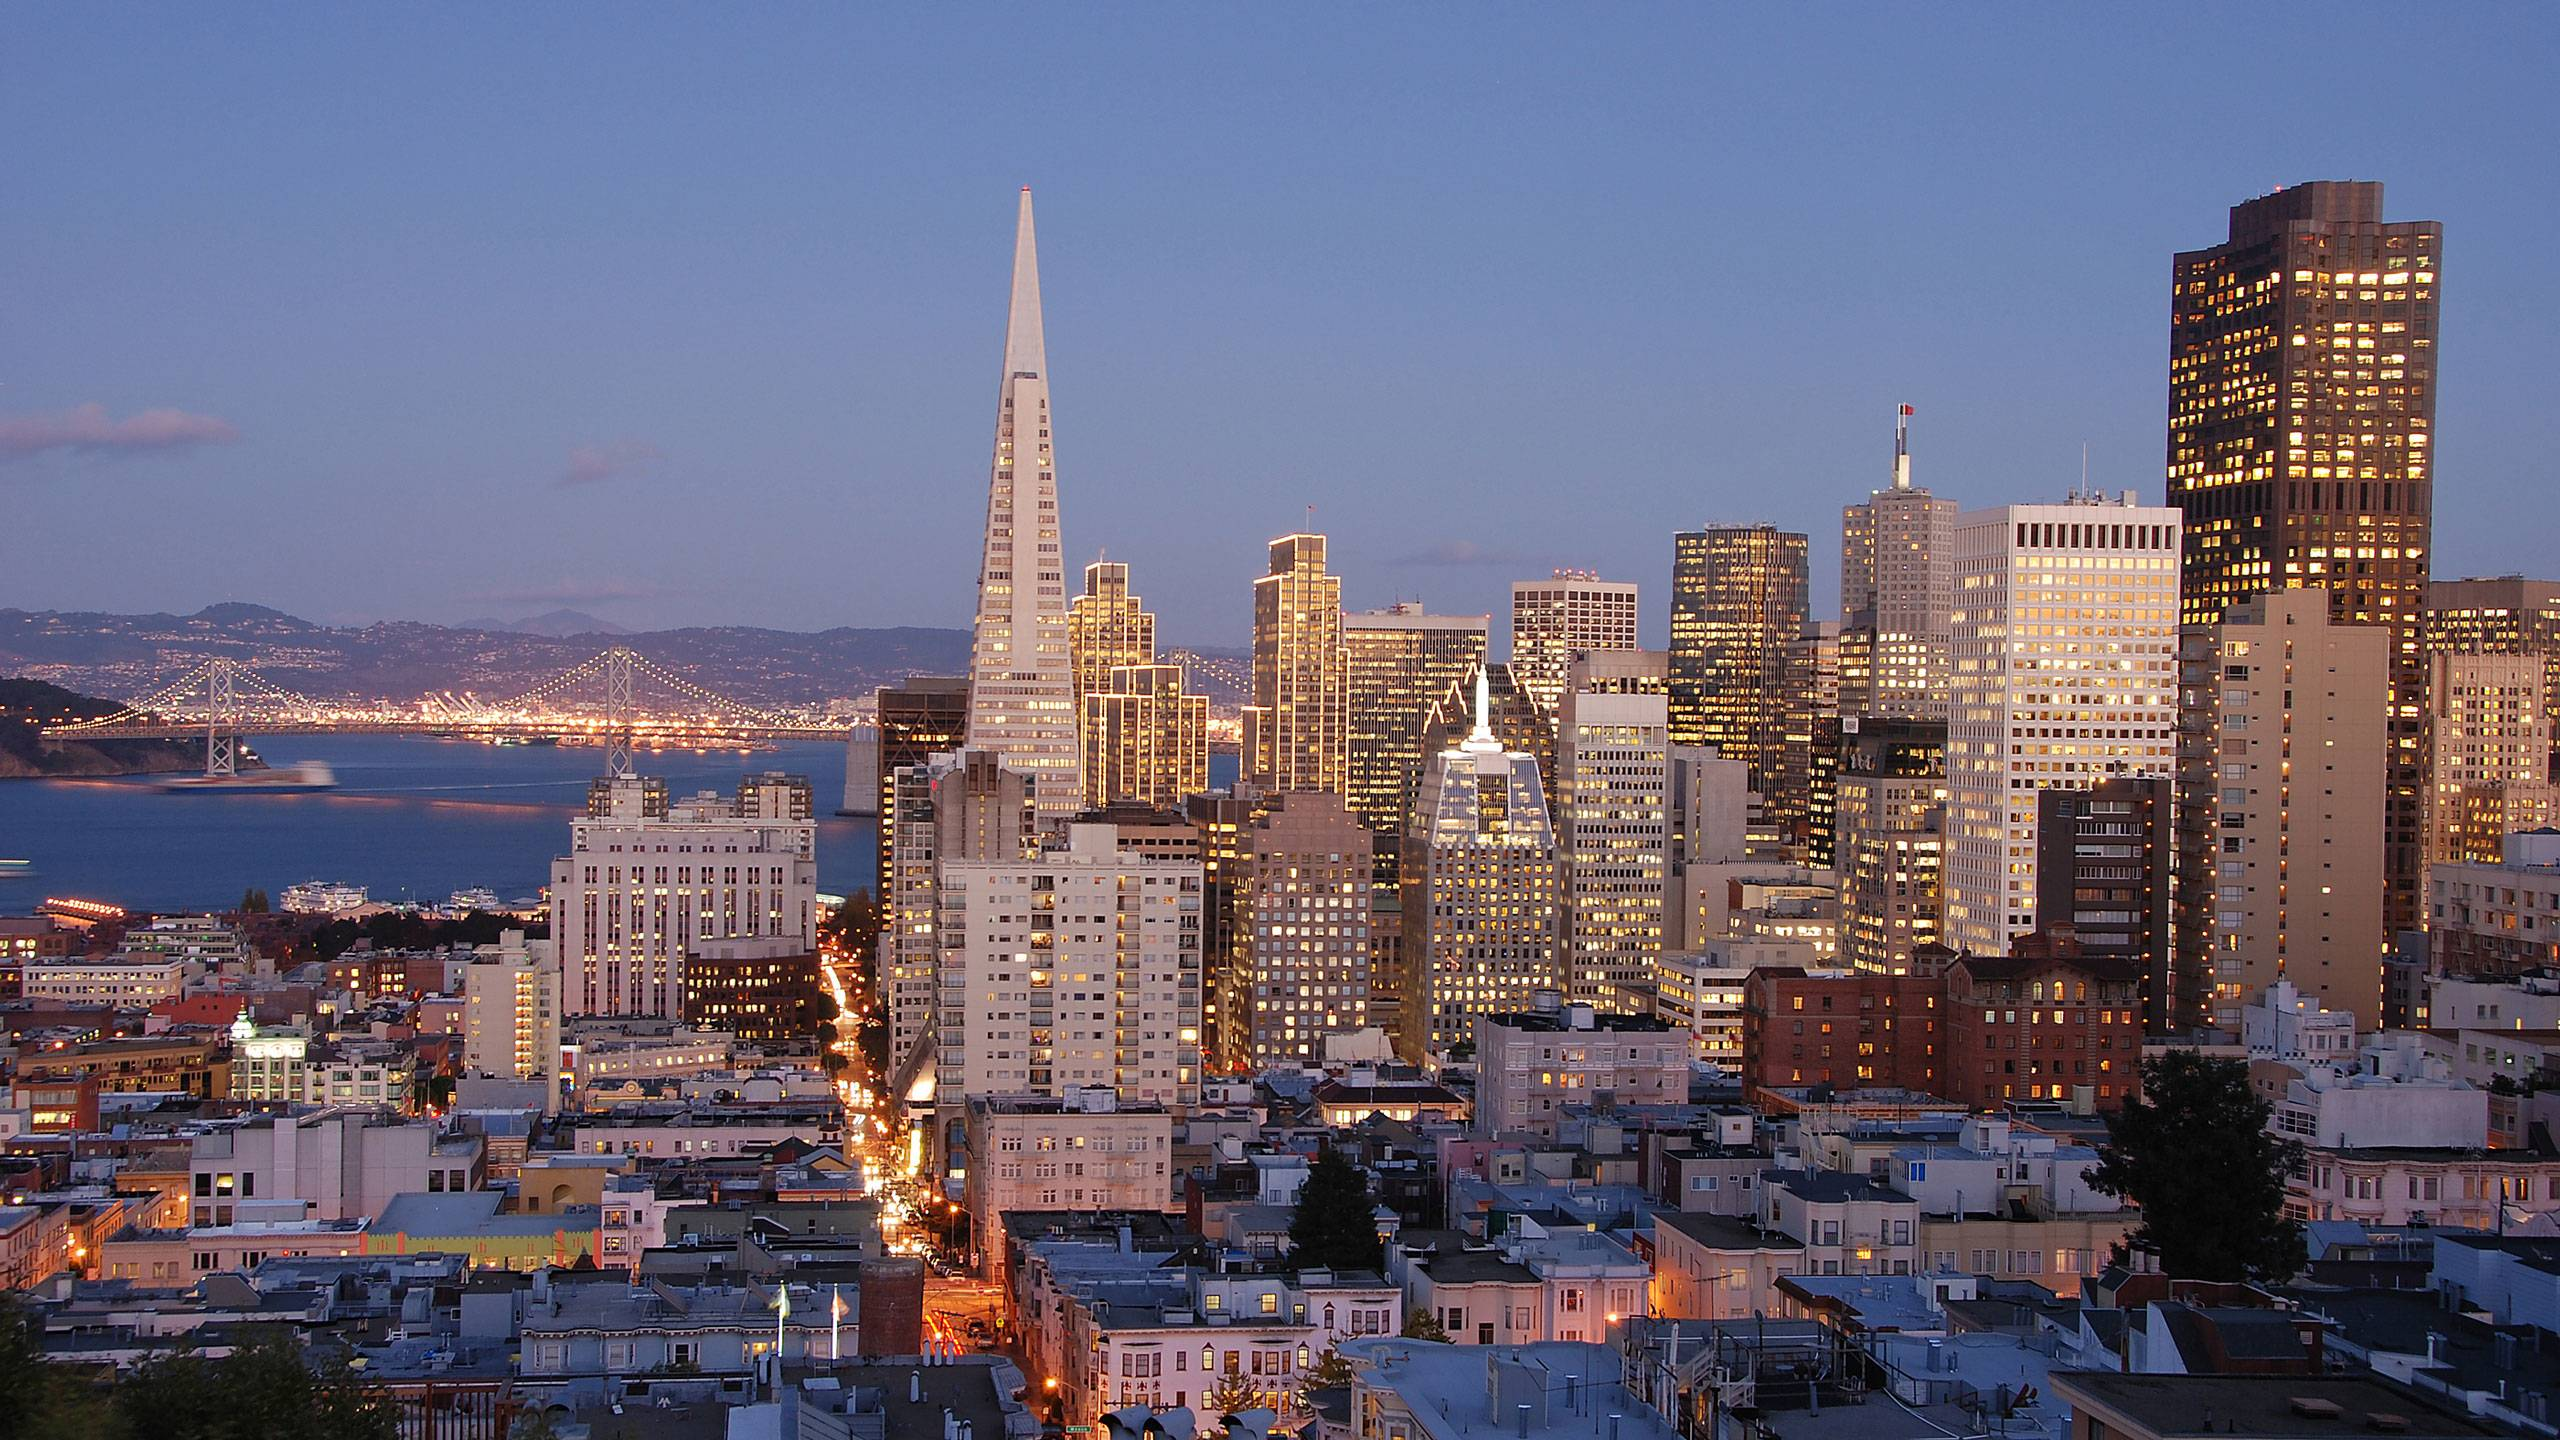 bigstock-San-Francisco-California-Skyl-1374490